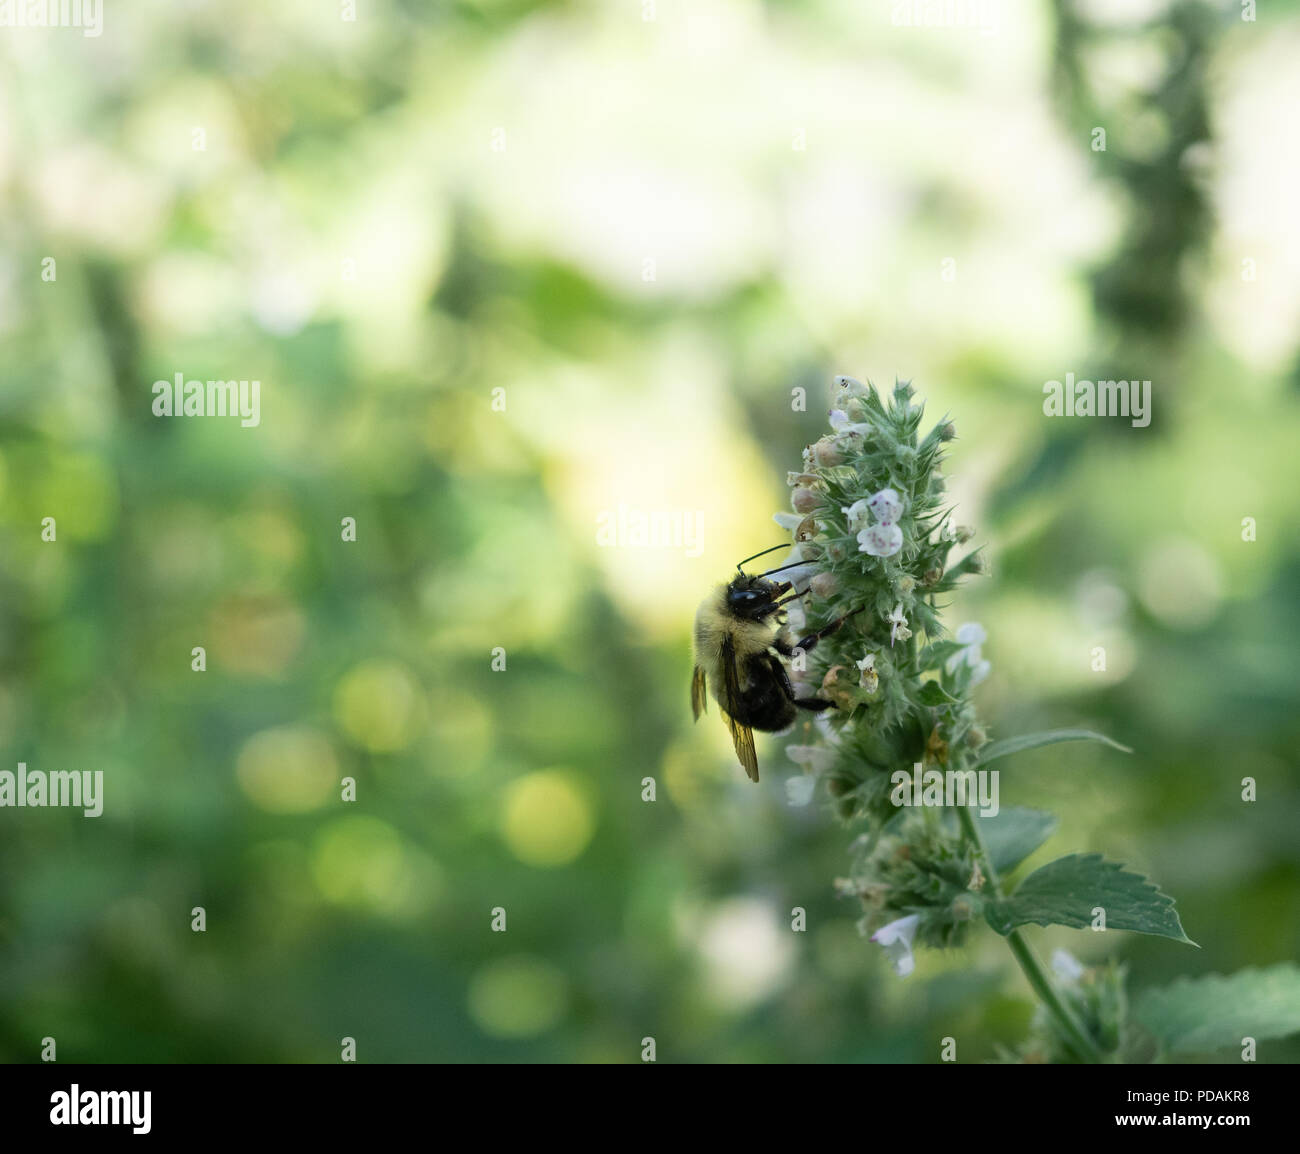 a honey bee gathering pollen from blossoms on a catnip plant  image has  shallow depth